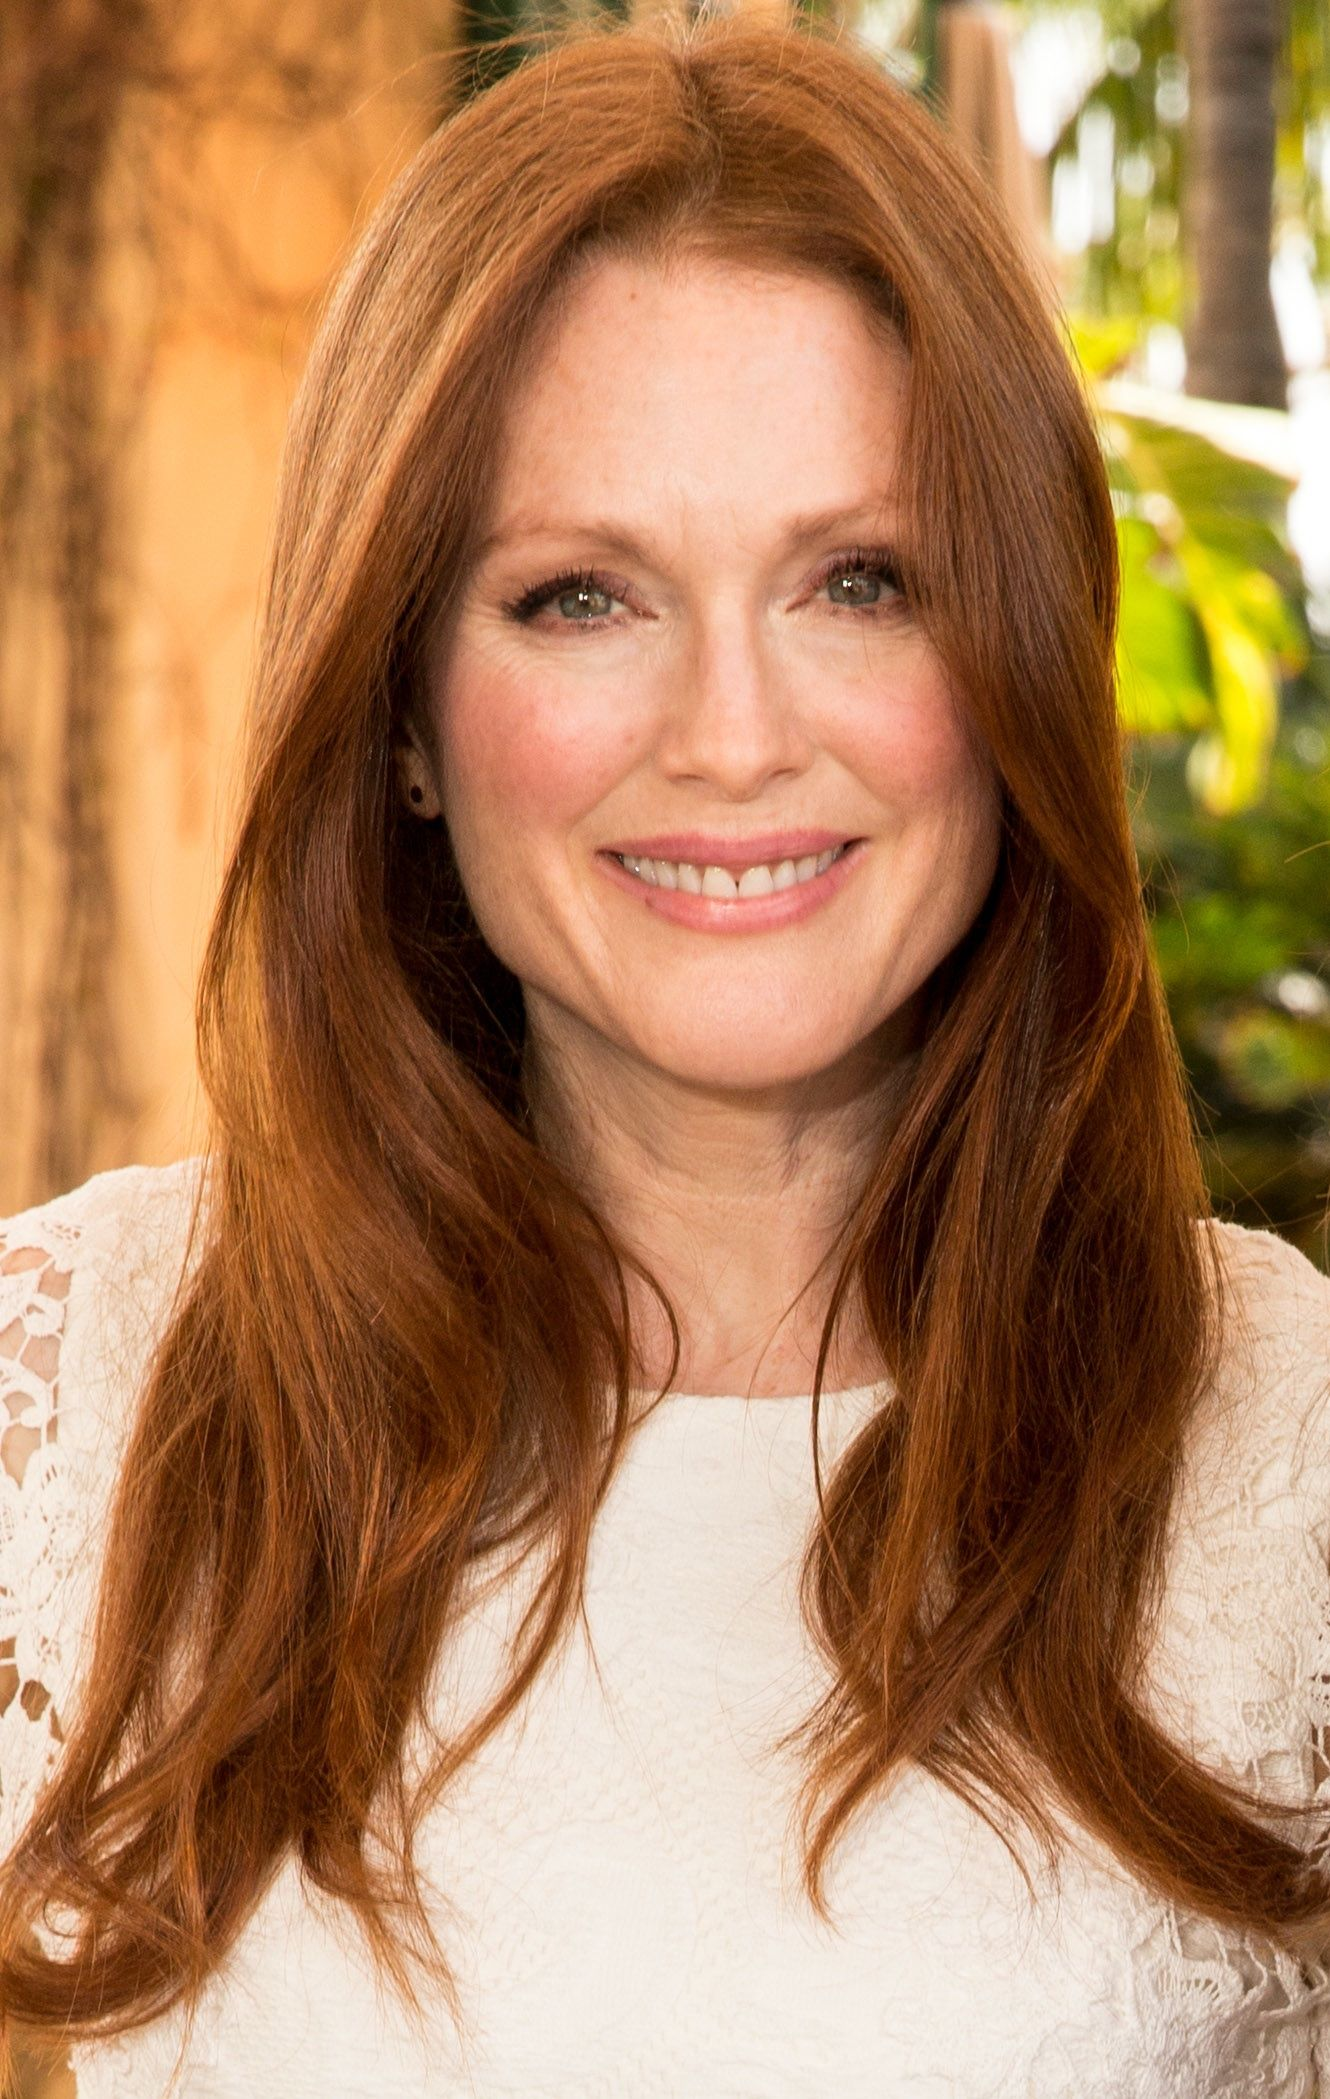 julianne moore julianne moore pinterest. Black Bedroom Furniture Sets. Home Design Ideas